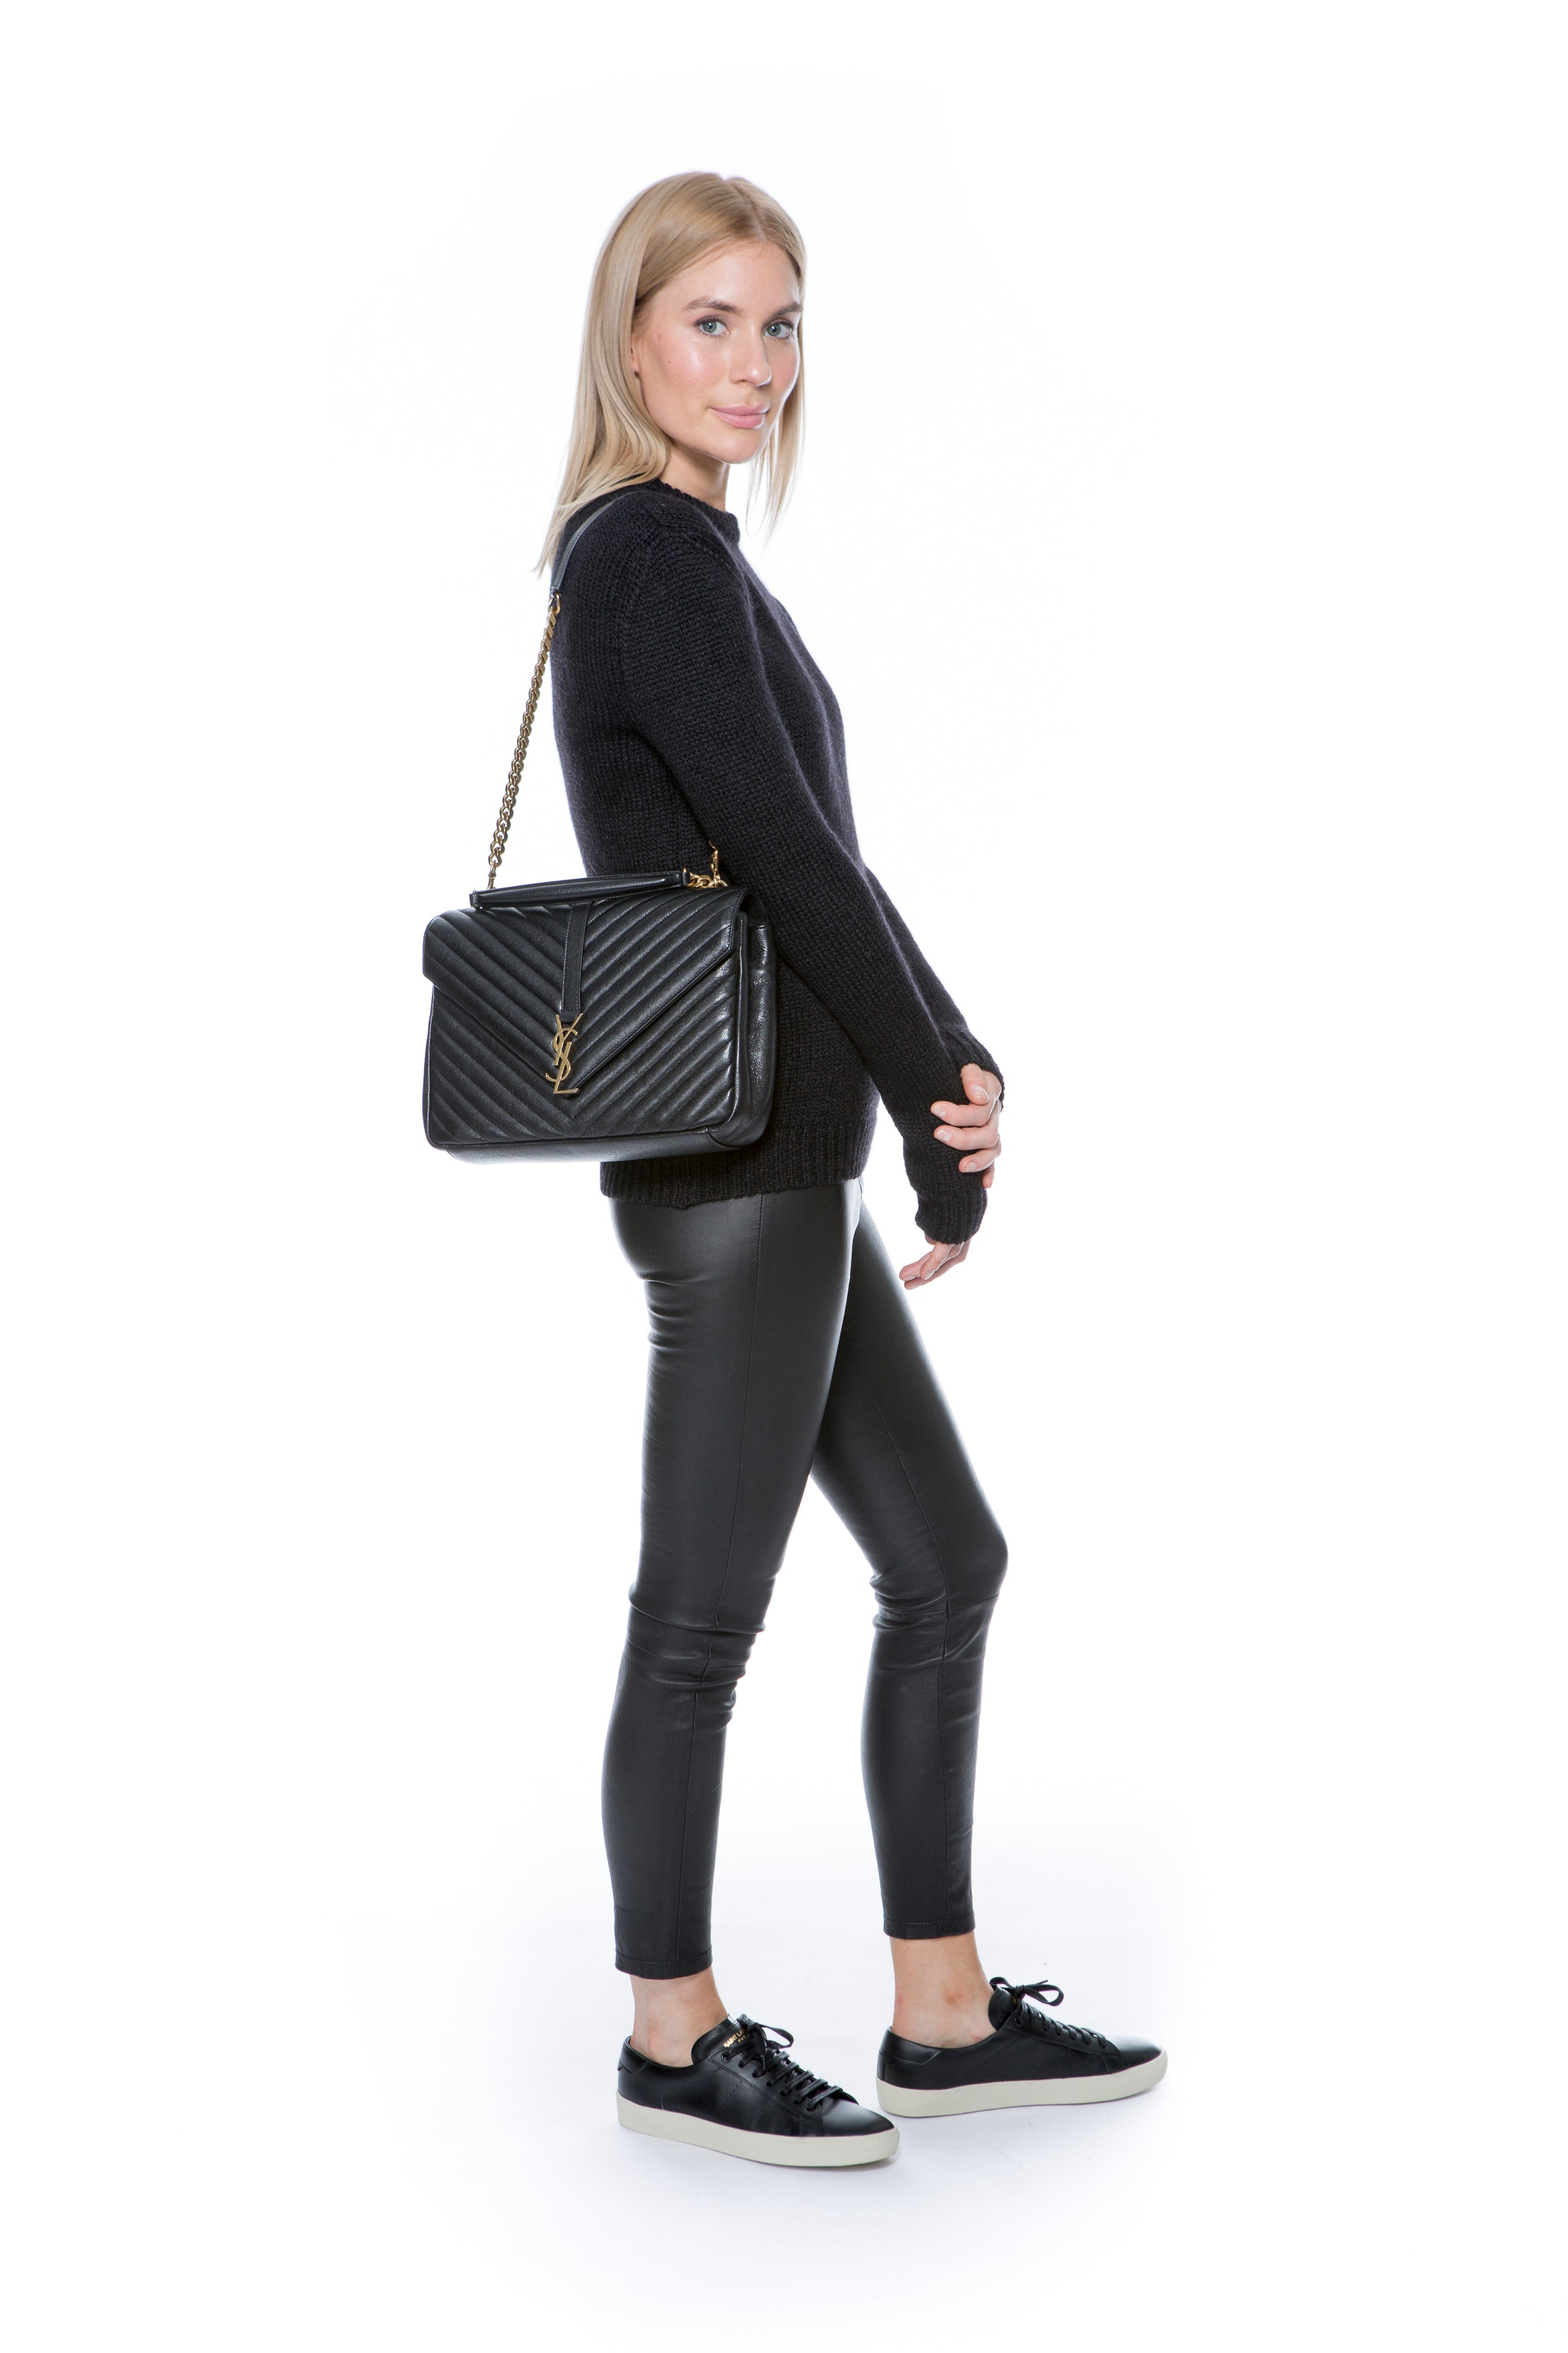 CLASSIC LARGE COLLÈGE BAG IN BLACK MATELASSÉ LEATHER